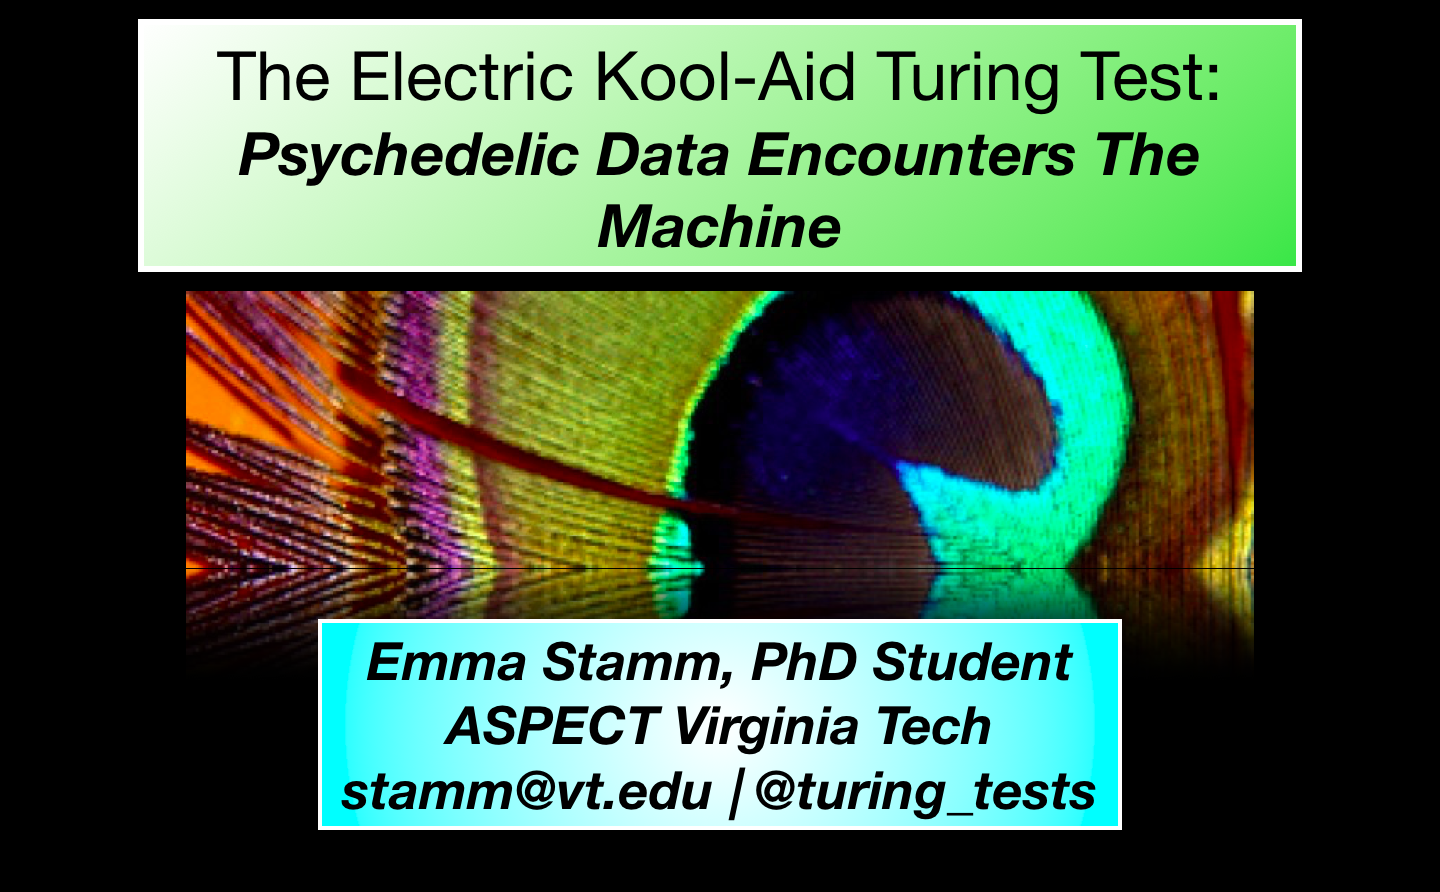 """""""The Electric Kool Aid Turing Test"""" introductory slide"""